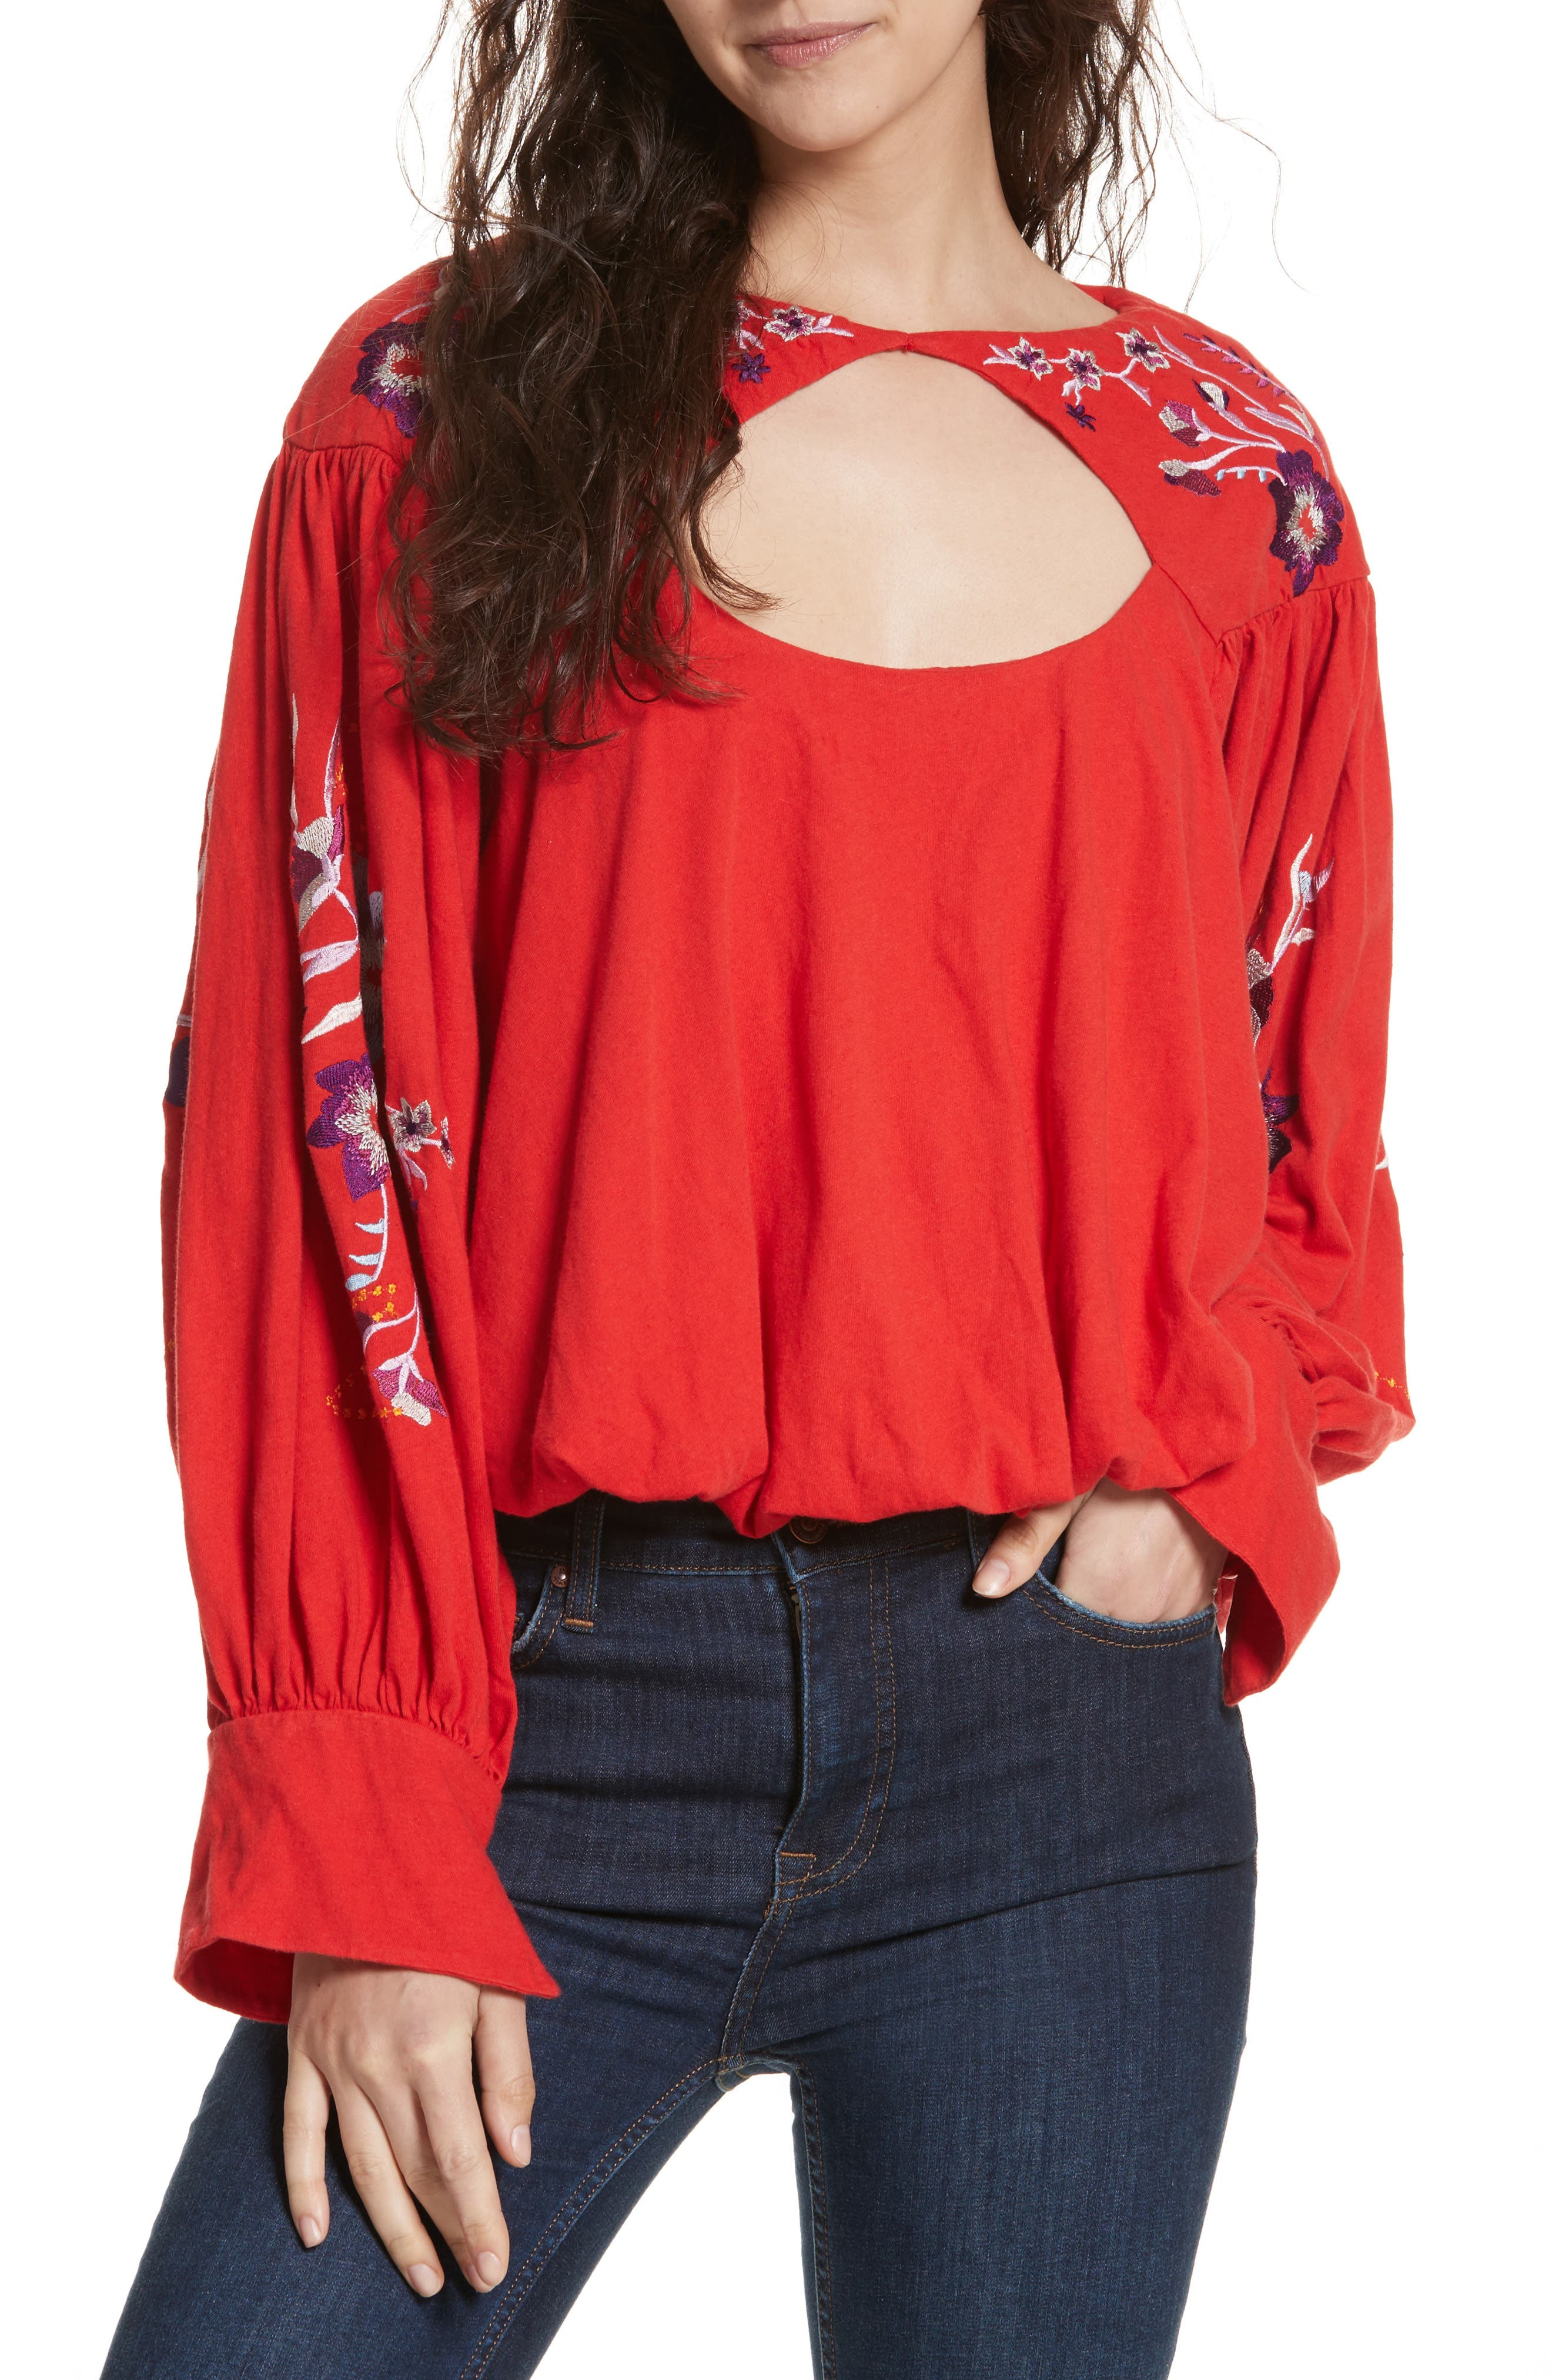 Alternate Image 1 Selected - Free People Lita Embroidered Bell Sleeve Top